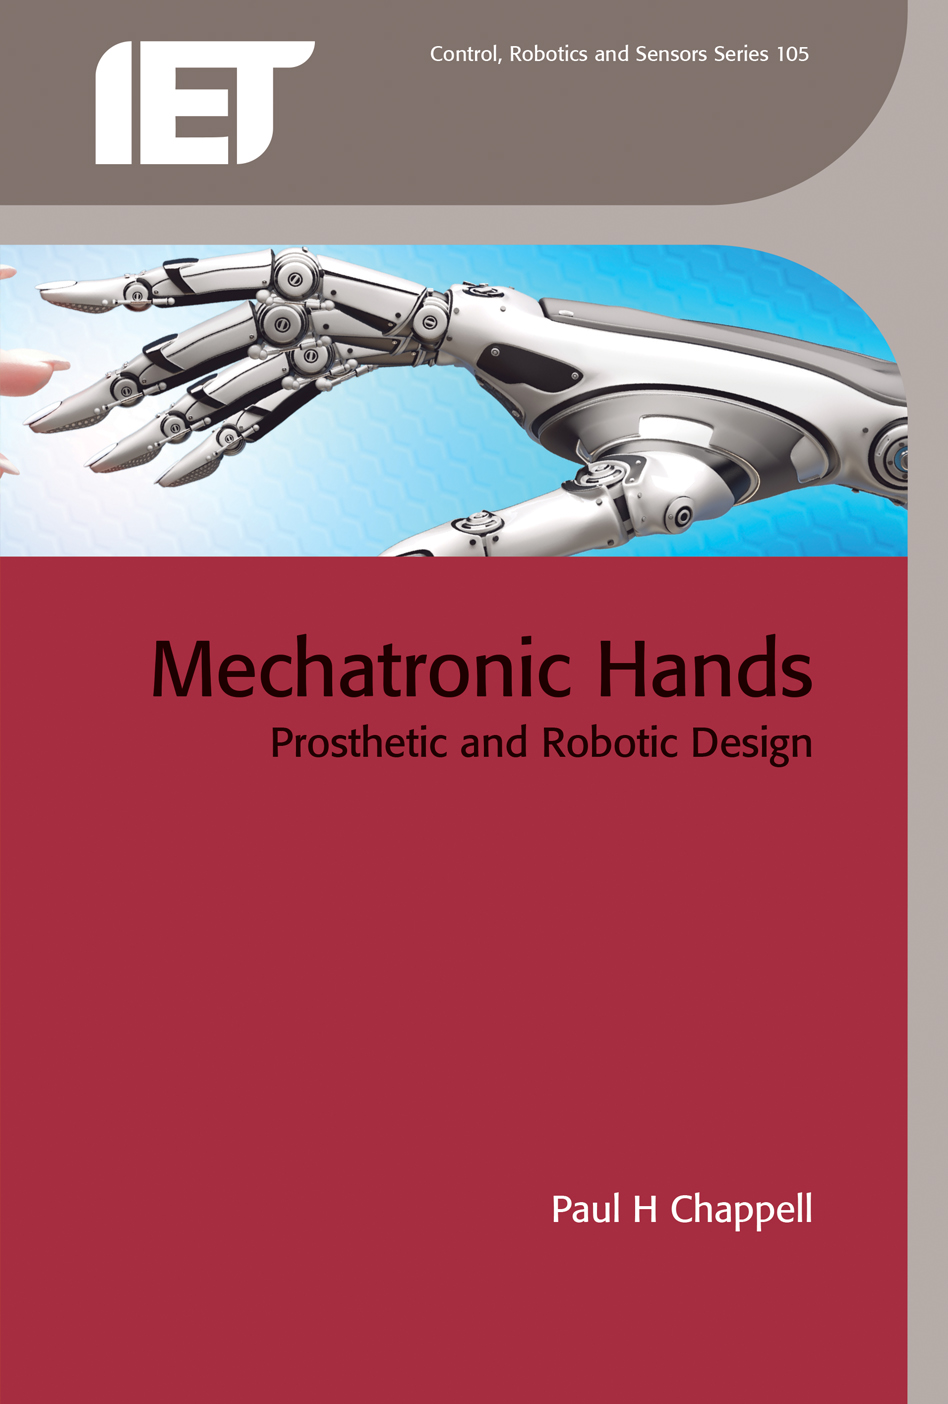 Mechatronic Hands, Prosthetic and robotic design